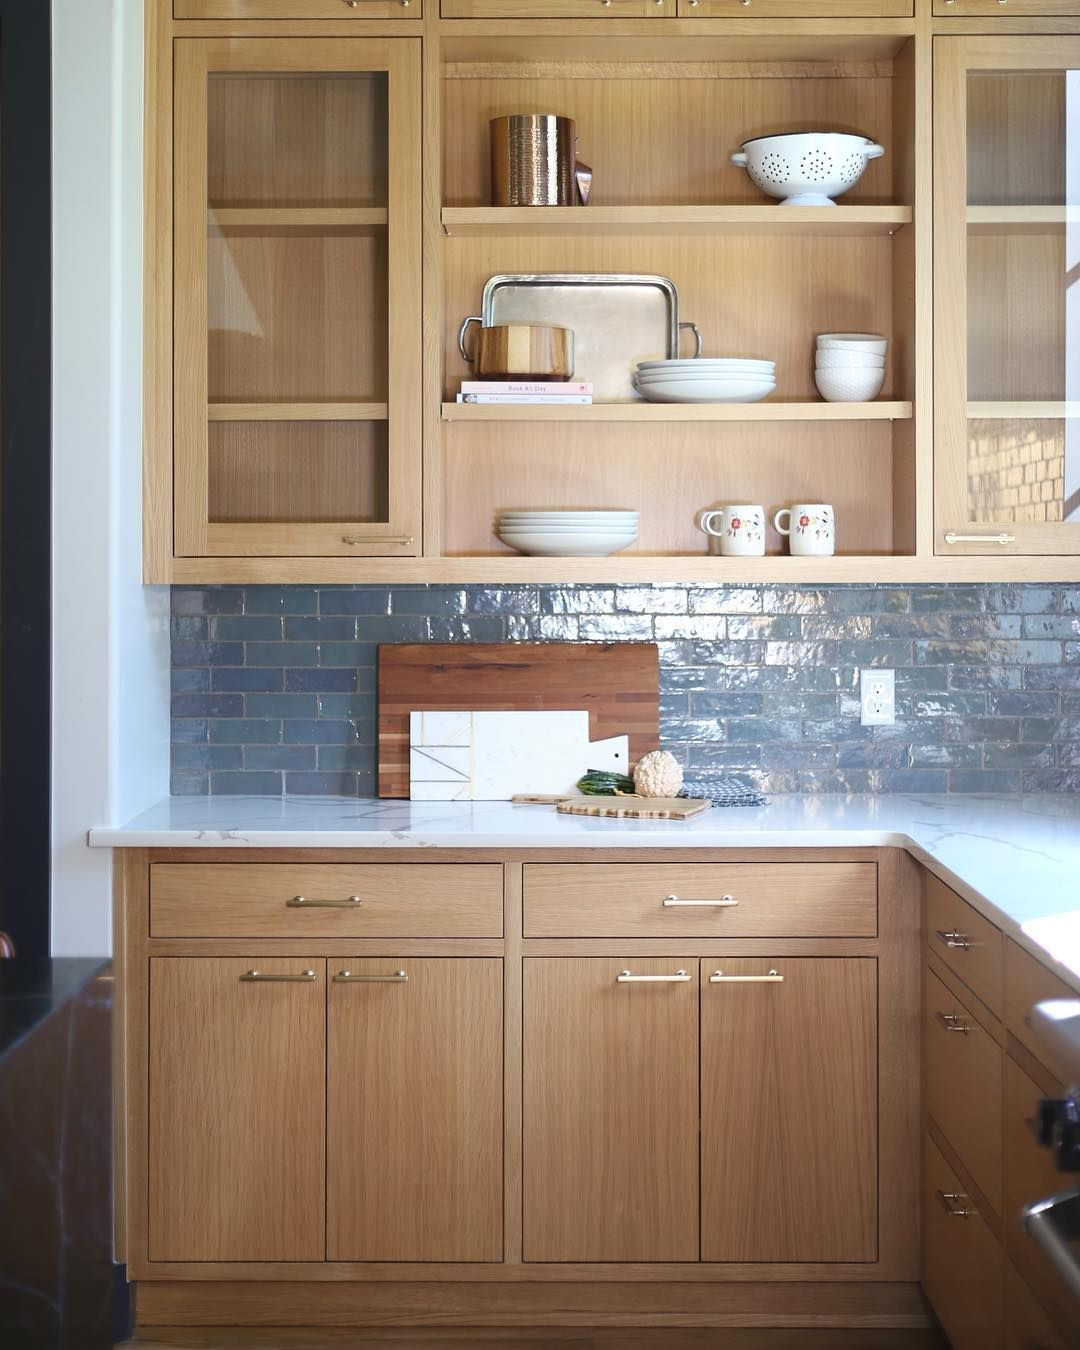 S A R A H B A K E R On Instagram I Have A Thing For These Rift Sawn White Oak Cabinets If Y In 2020 White Oak Kitchen Upper Kitchen Cabinets Maple Kitchen Cabinets